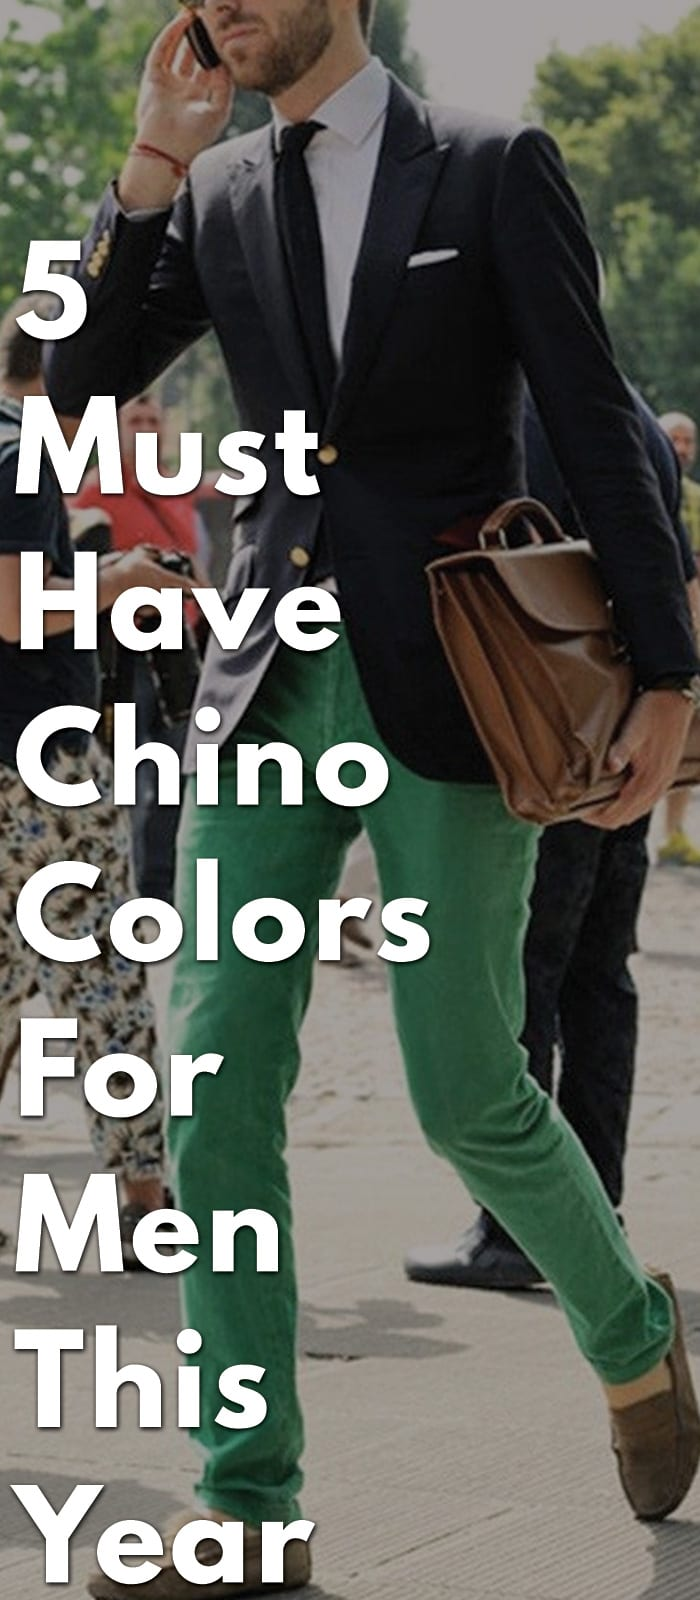 5-Must-have-Chino-Colors-for-Men-This-Year